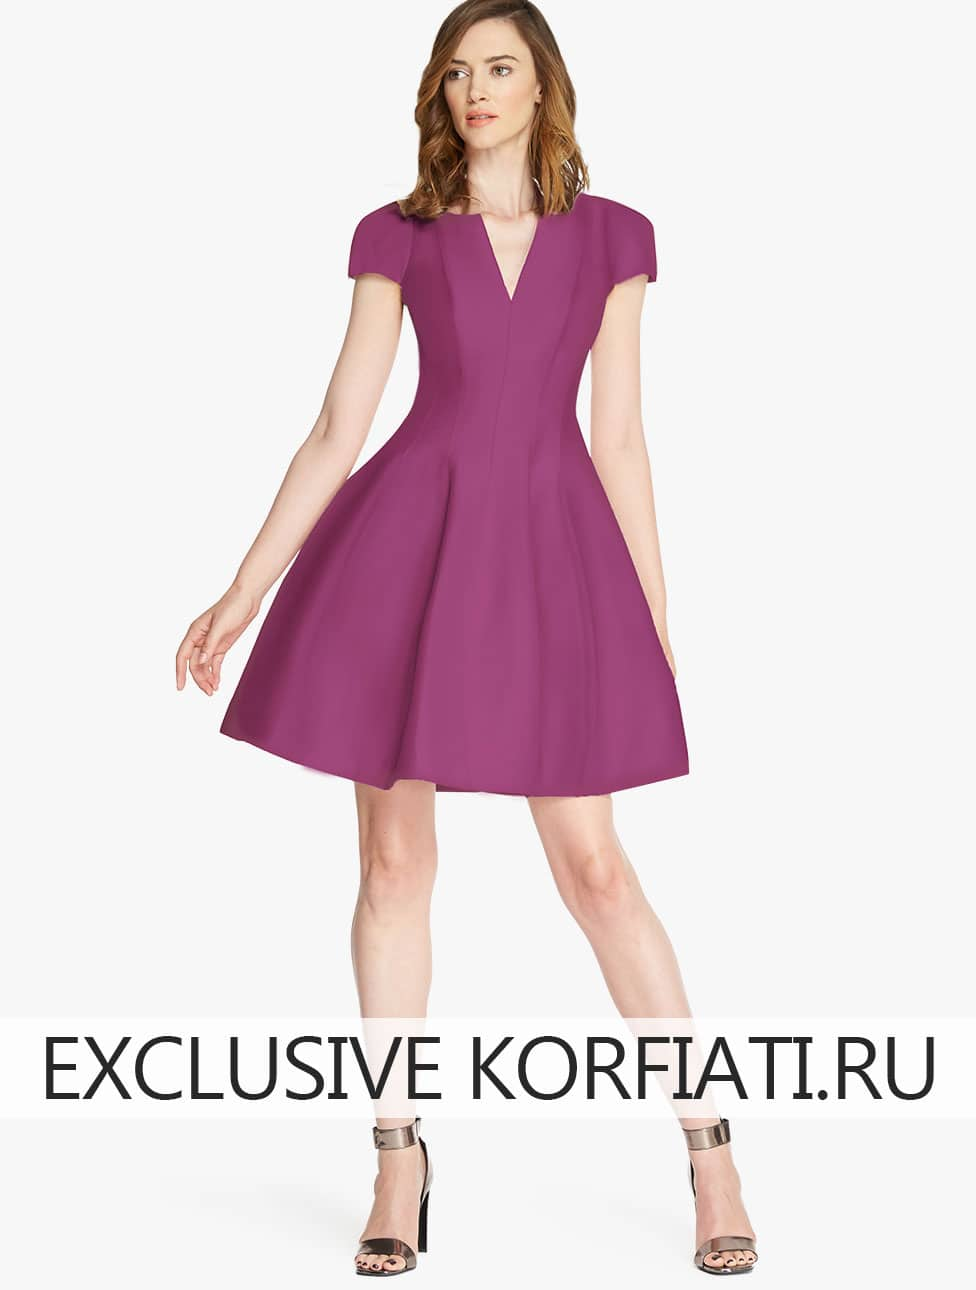 http://korfiati.ru/wp-content/uploads/2015/09/pink-dress-foto1.jpg